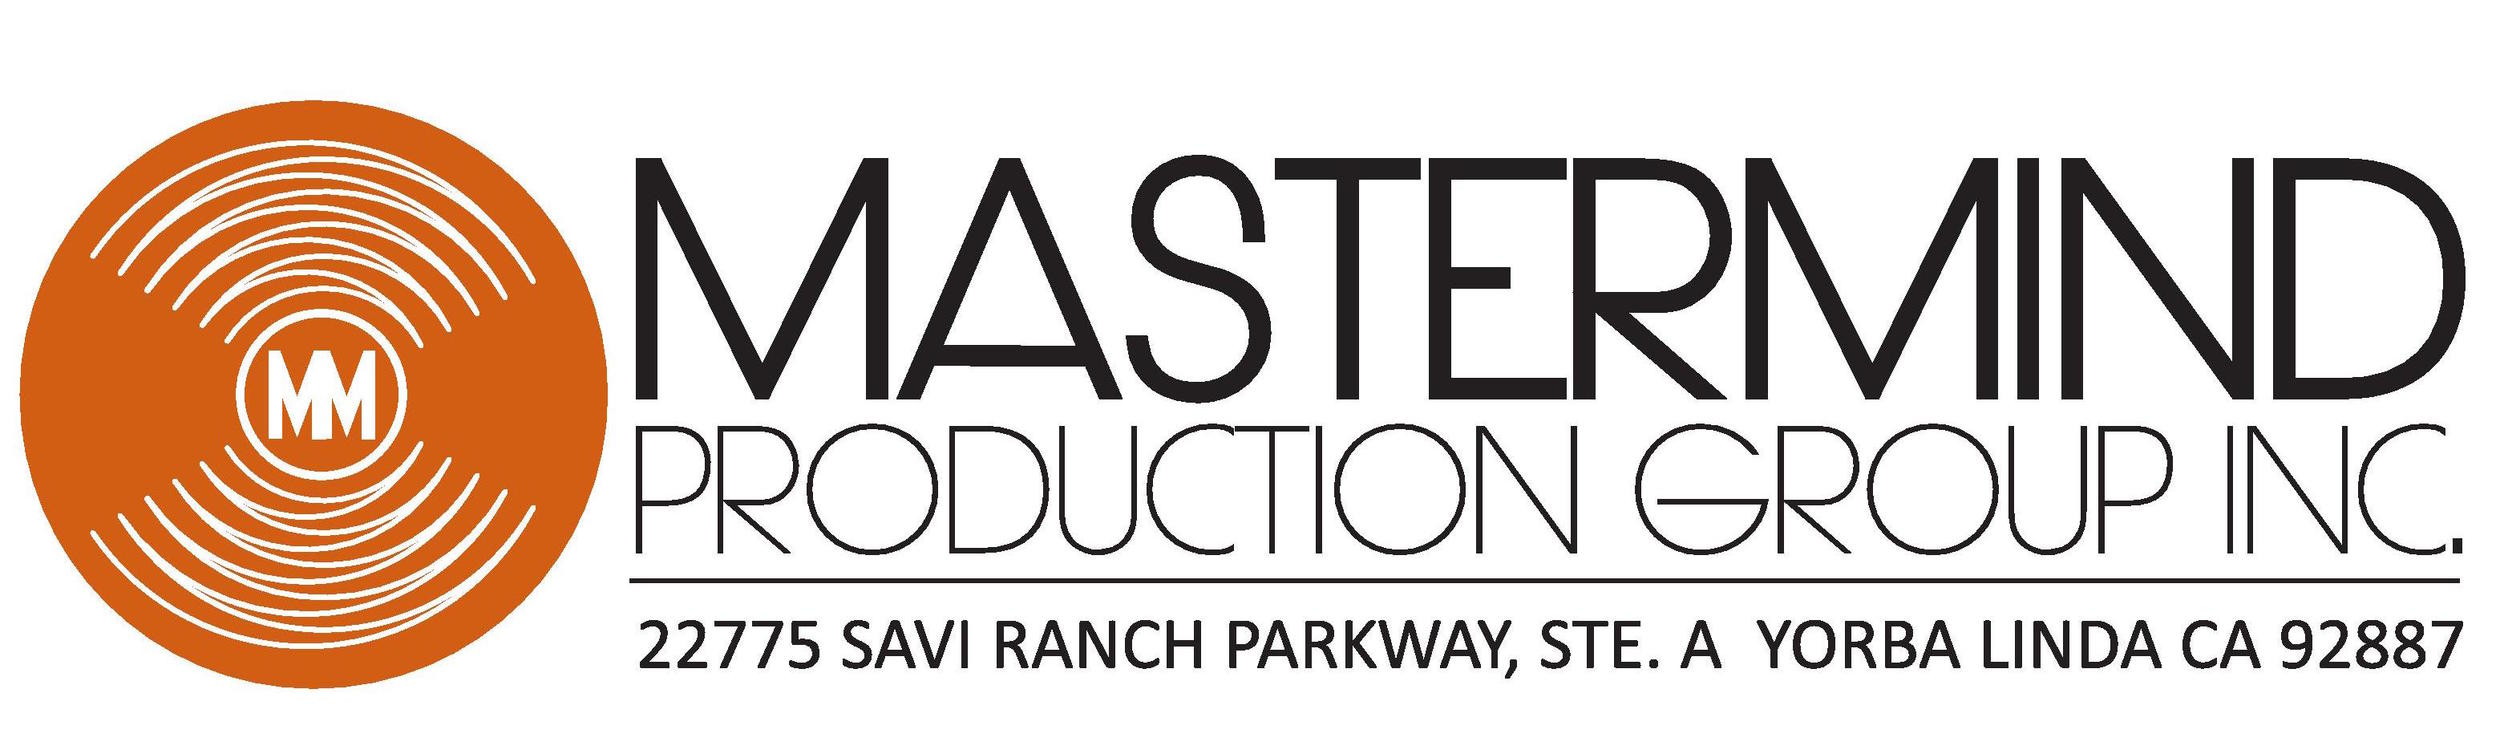 Mastermind Production Group Inc.